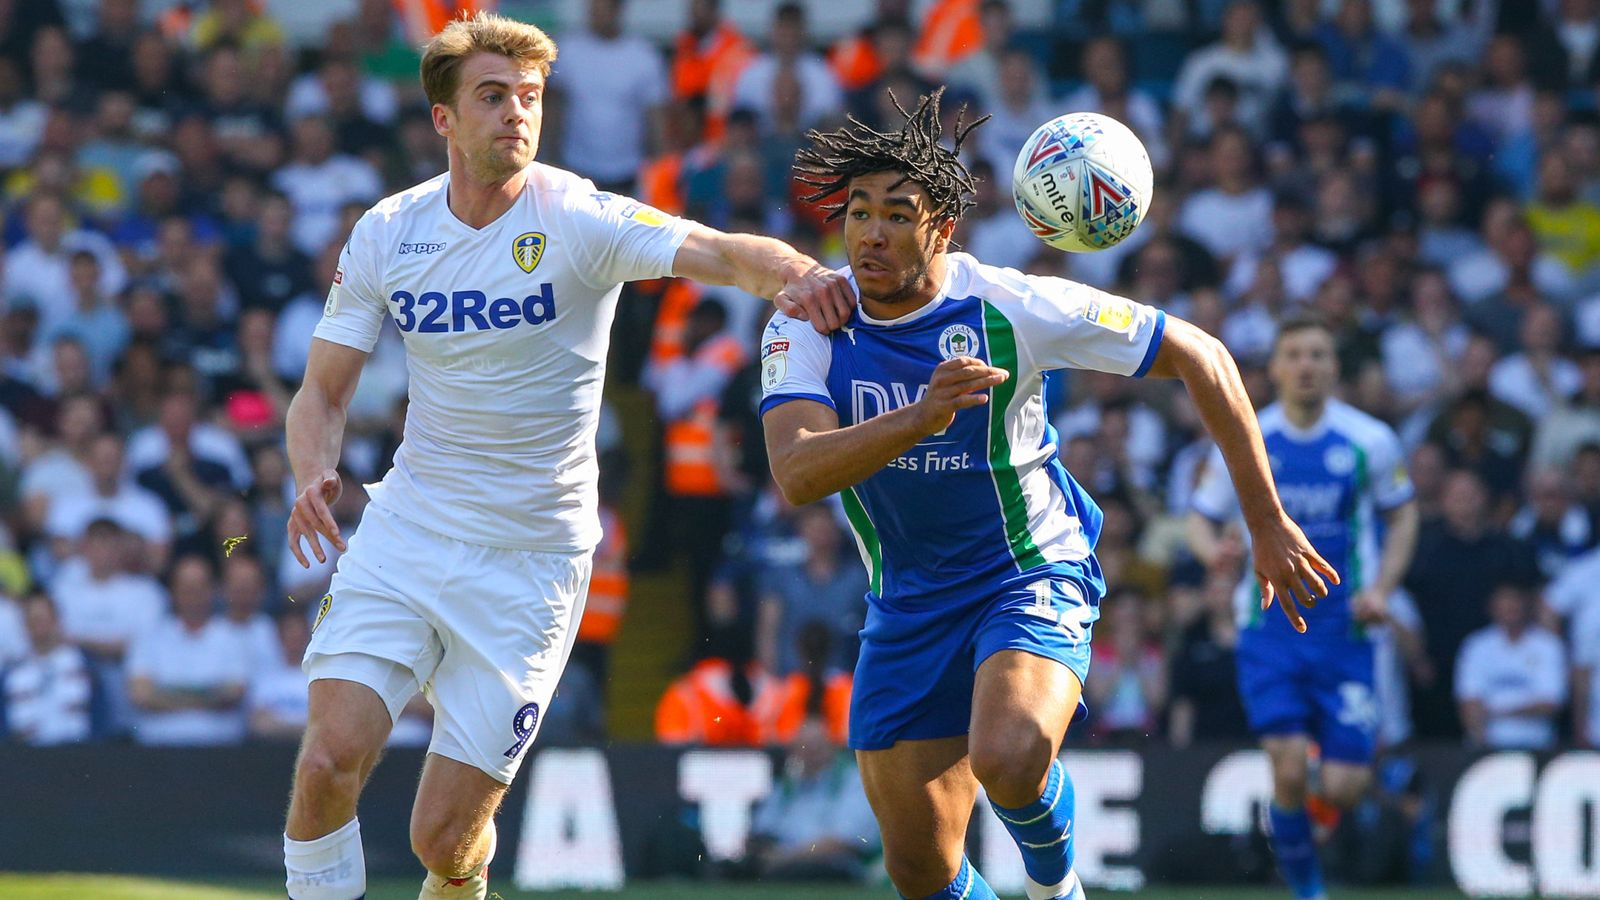 Premier League's young stars: The story of Reece James ...